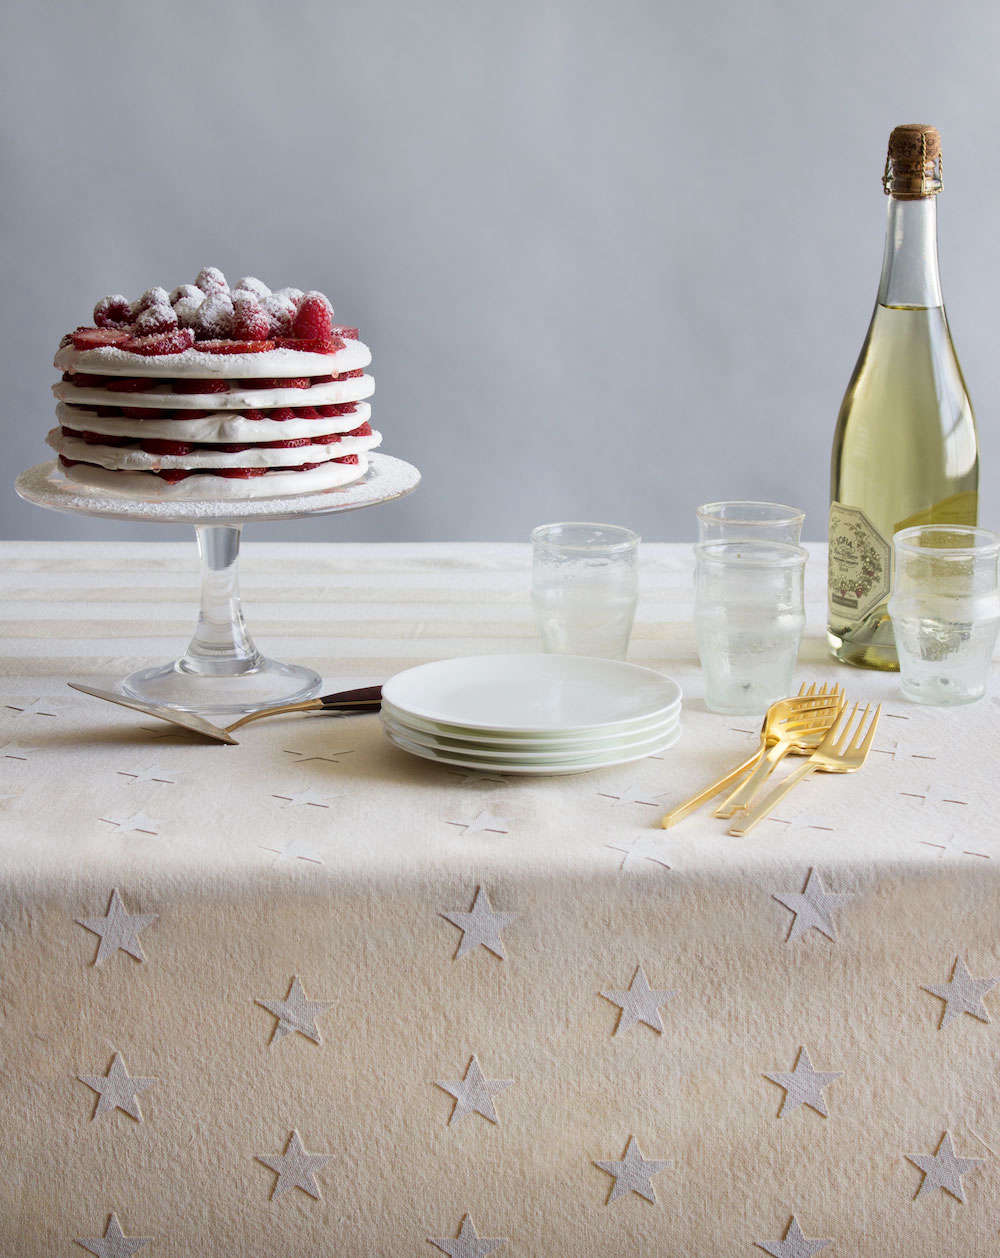 DIY Fourth of July Tablecloth by David Stark for Remodelista